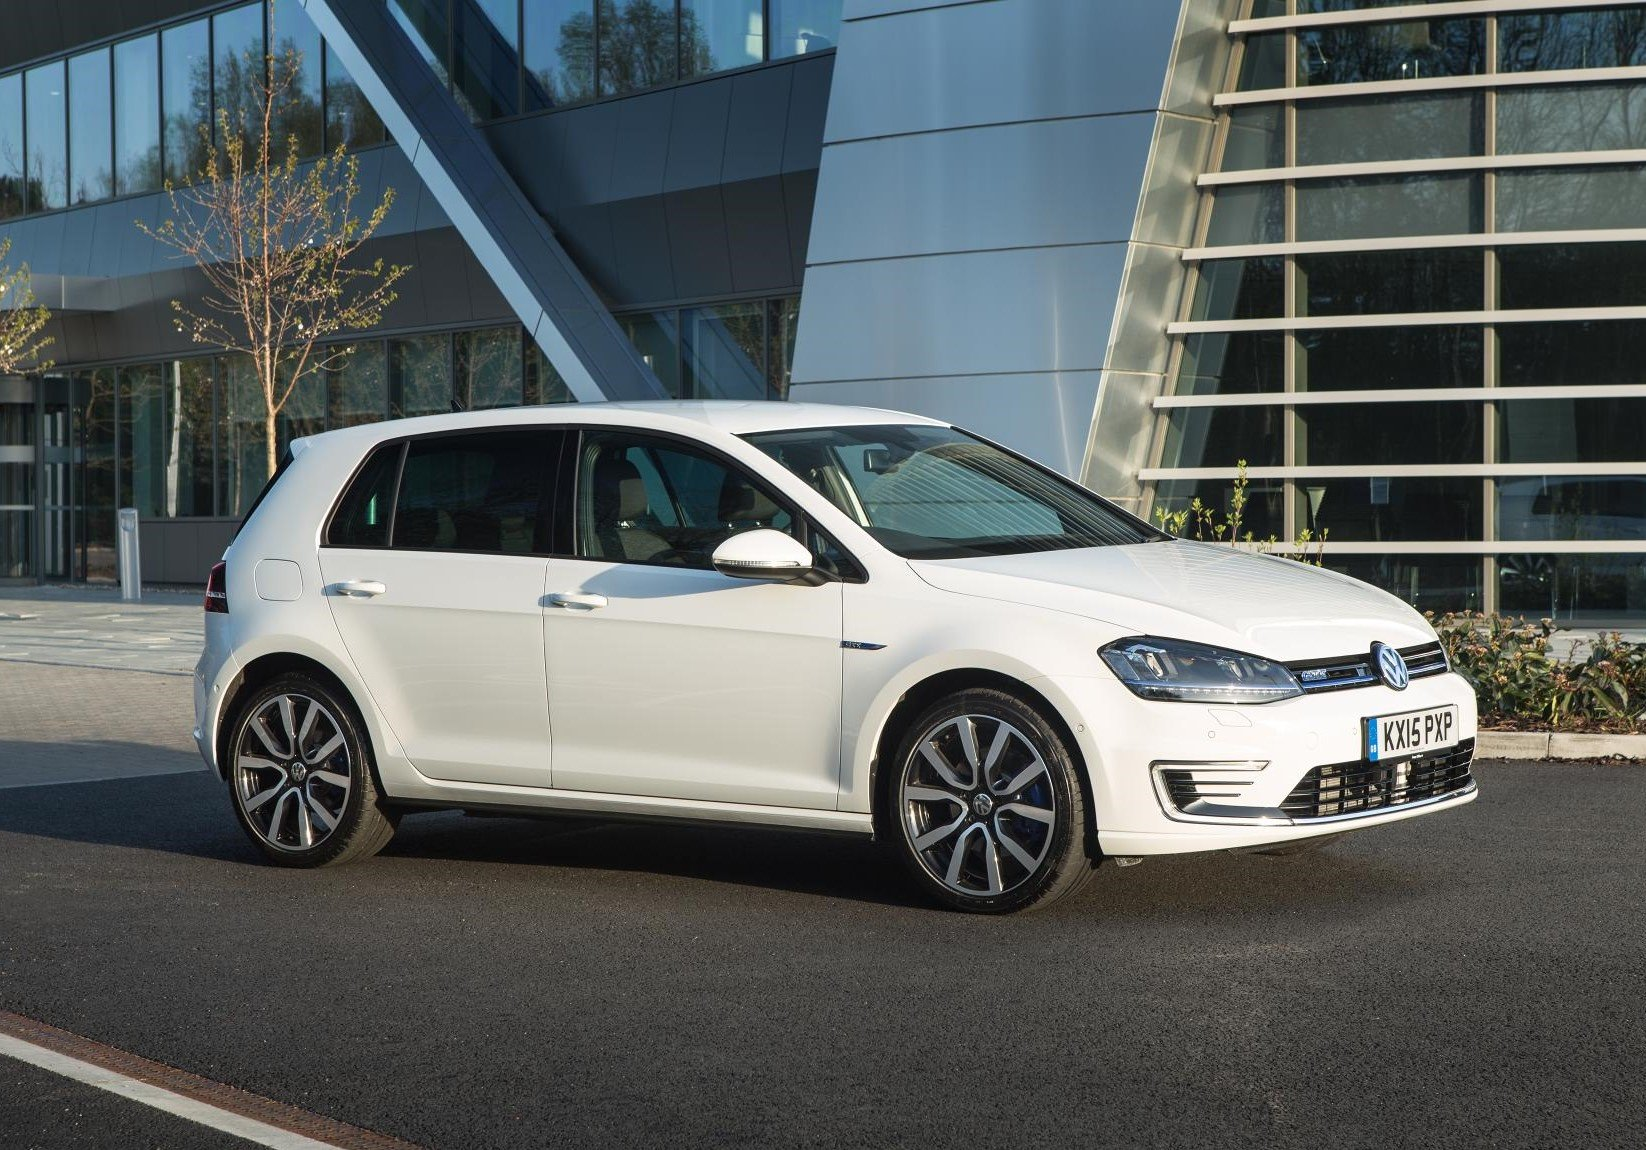 image of a white electric volkswagen golf gte car exterior